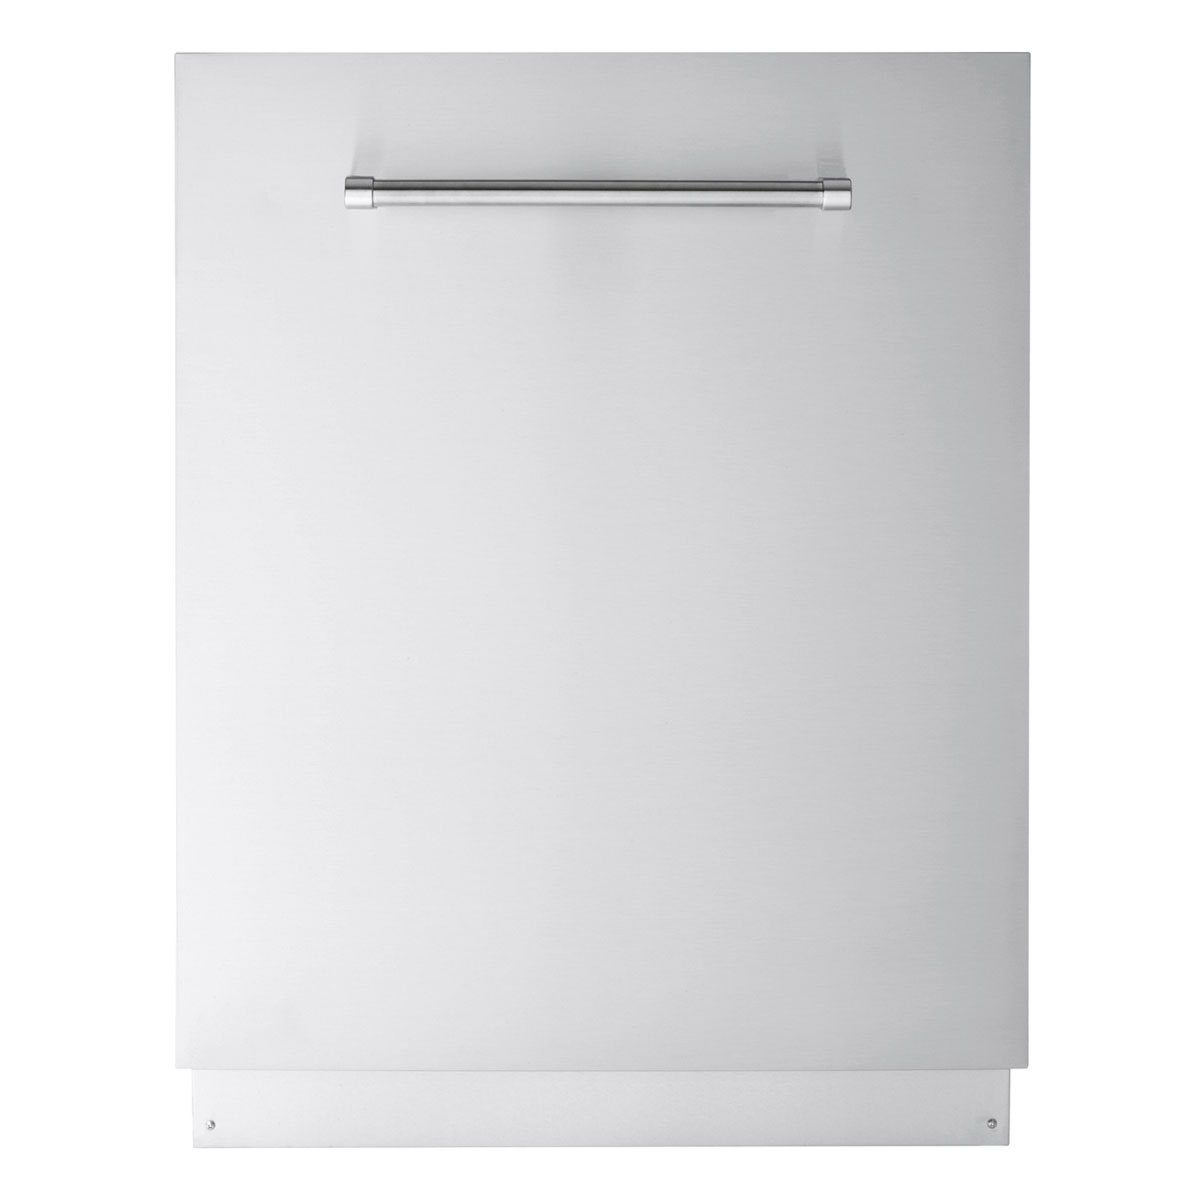 Delonghi DEDW654FI Fully-Integrated Dishwasher 25631